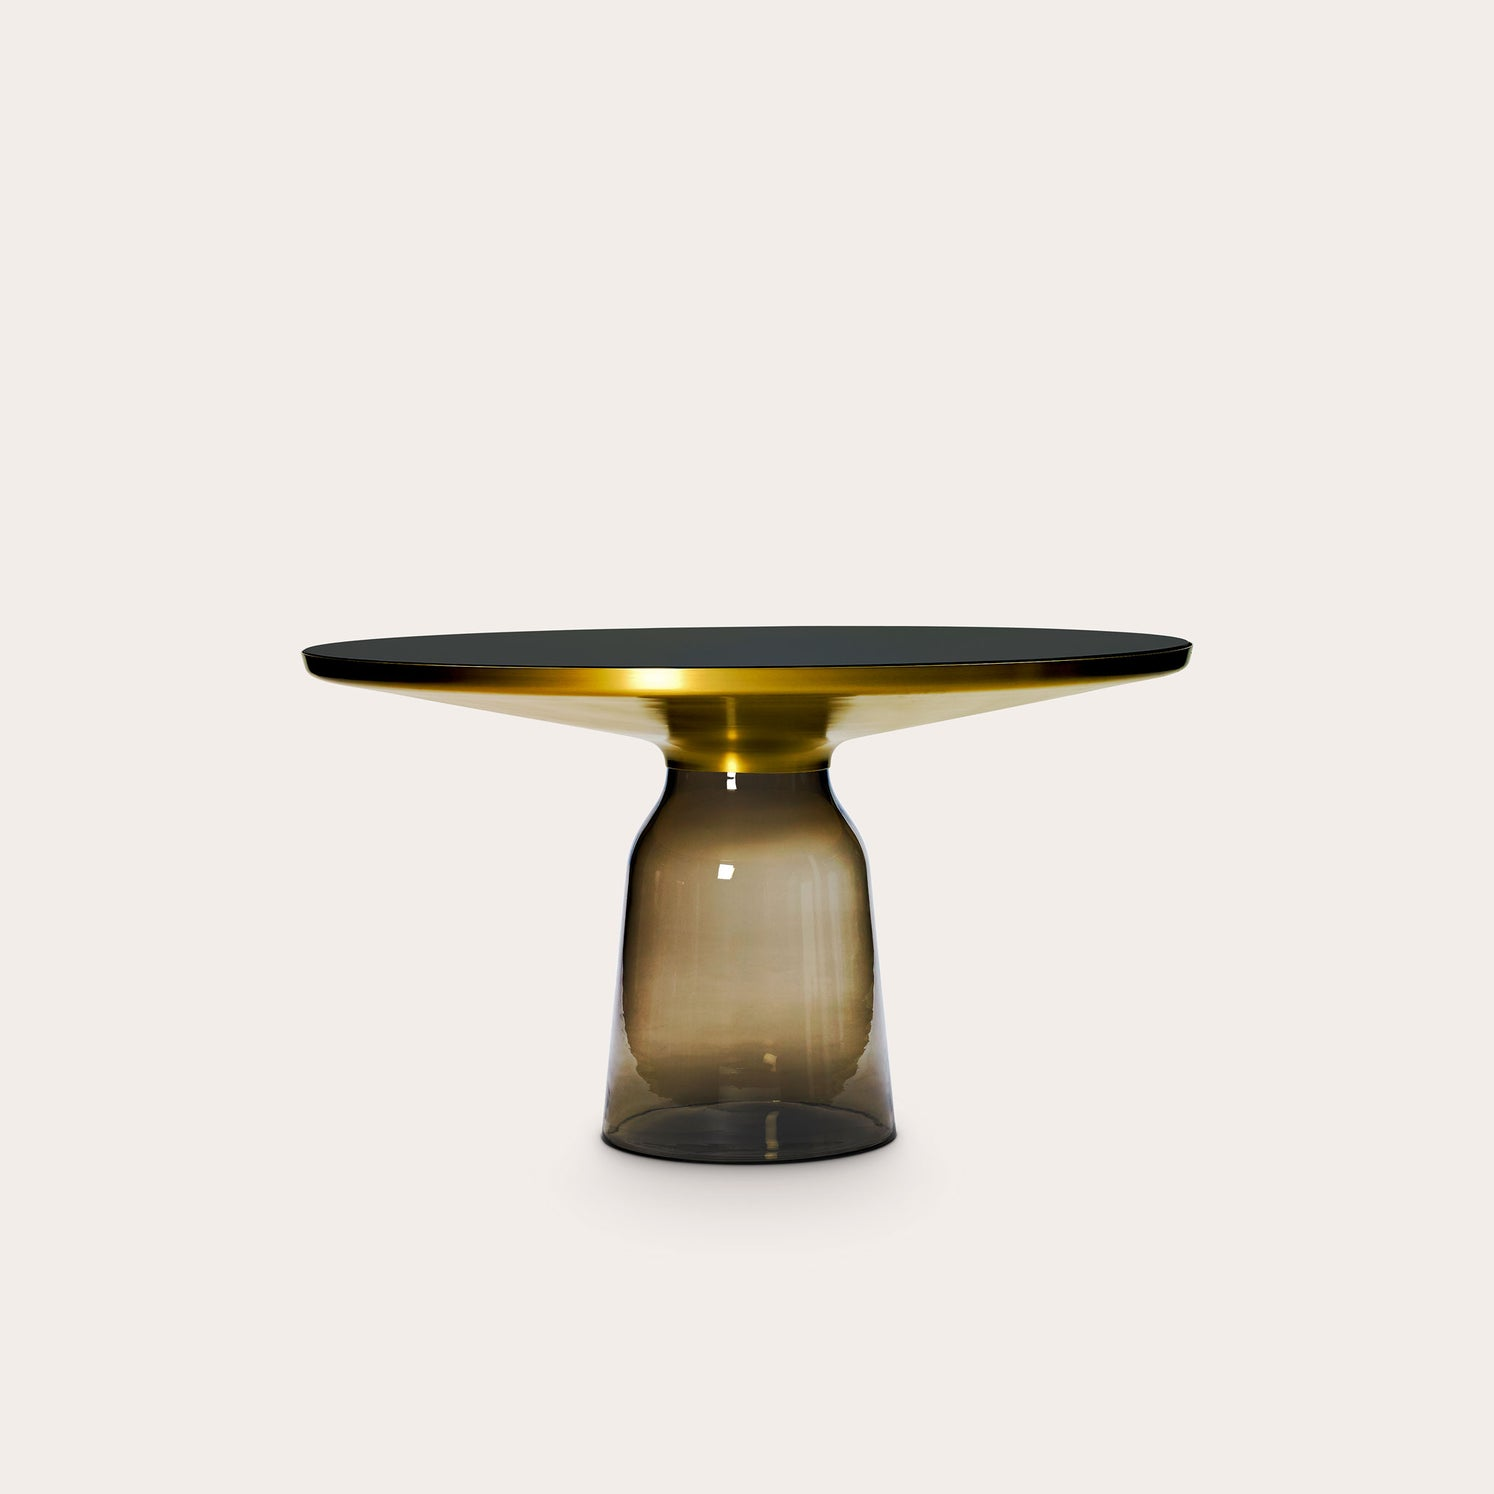 Bell Tables Sebastian Herkner Designer Furniture Sku: 001-230-10304